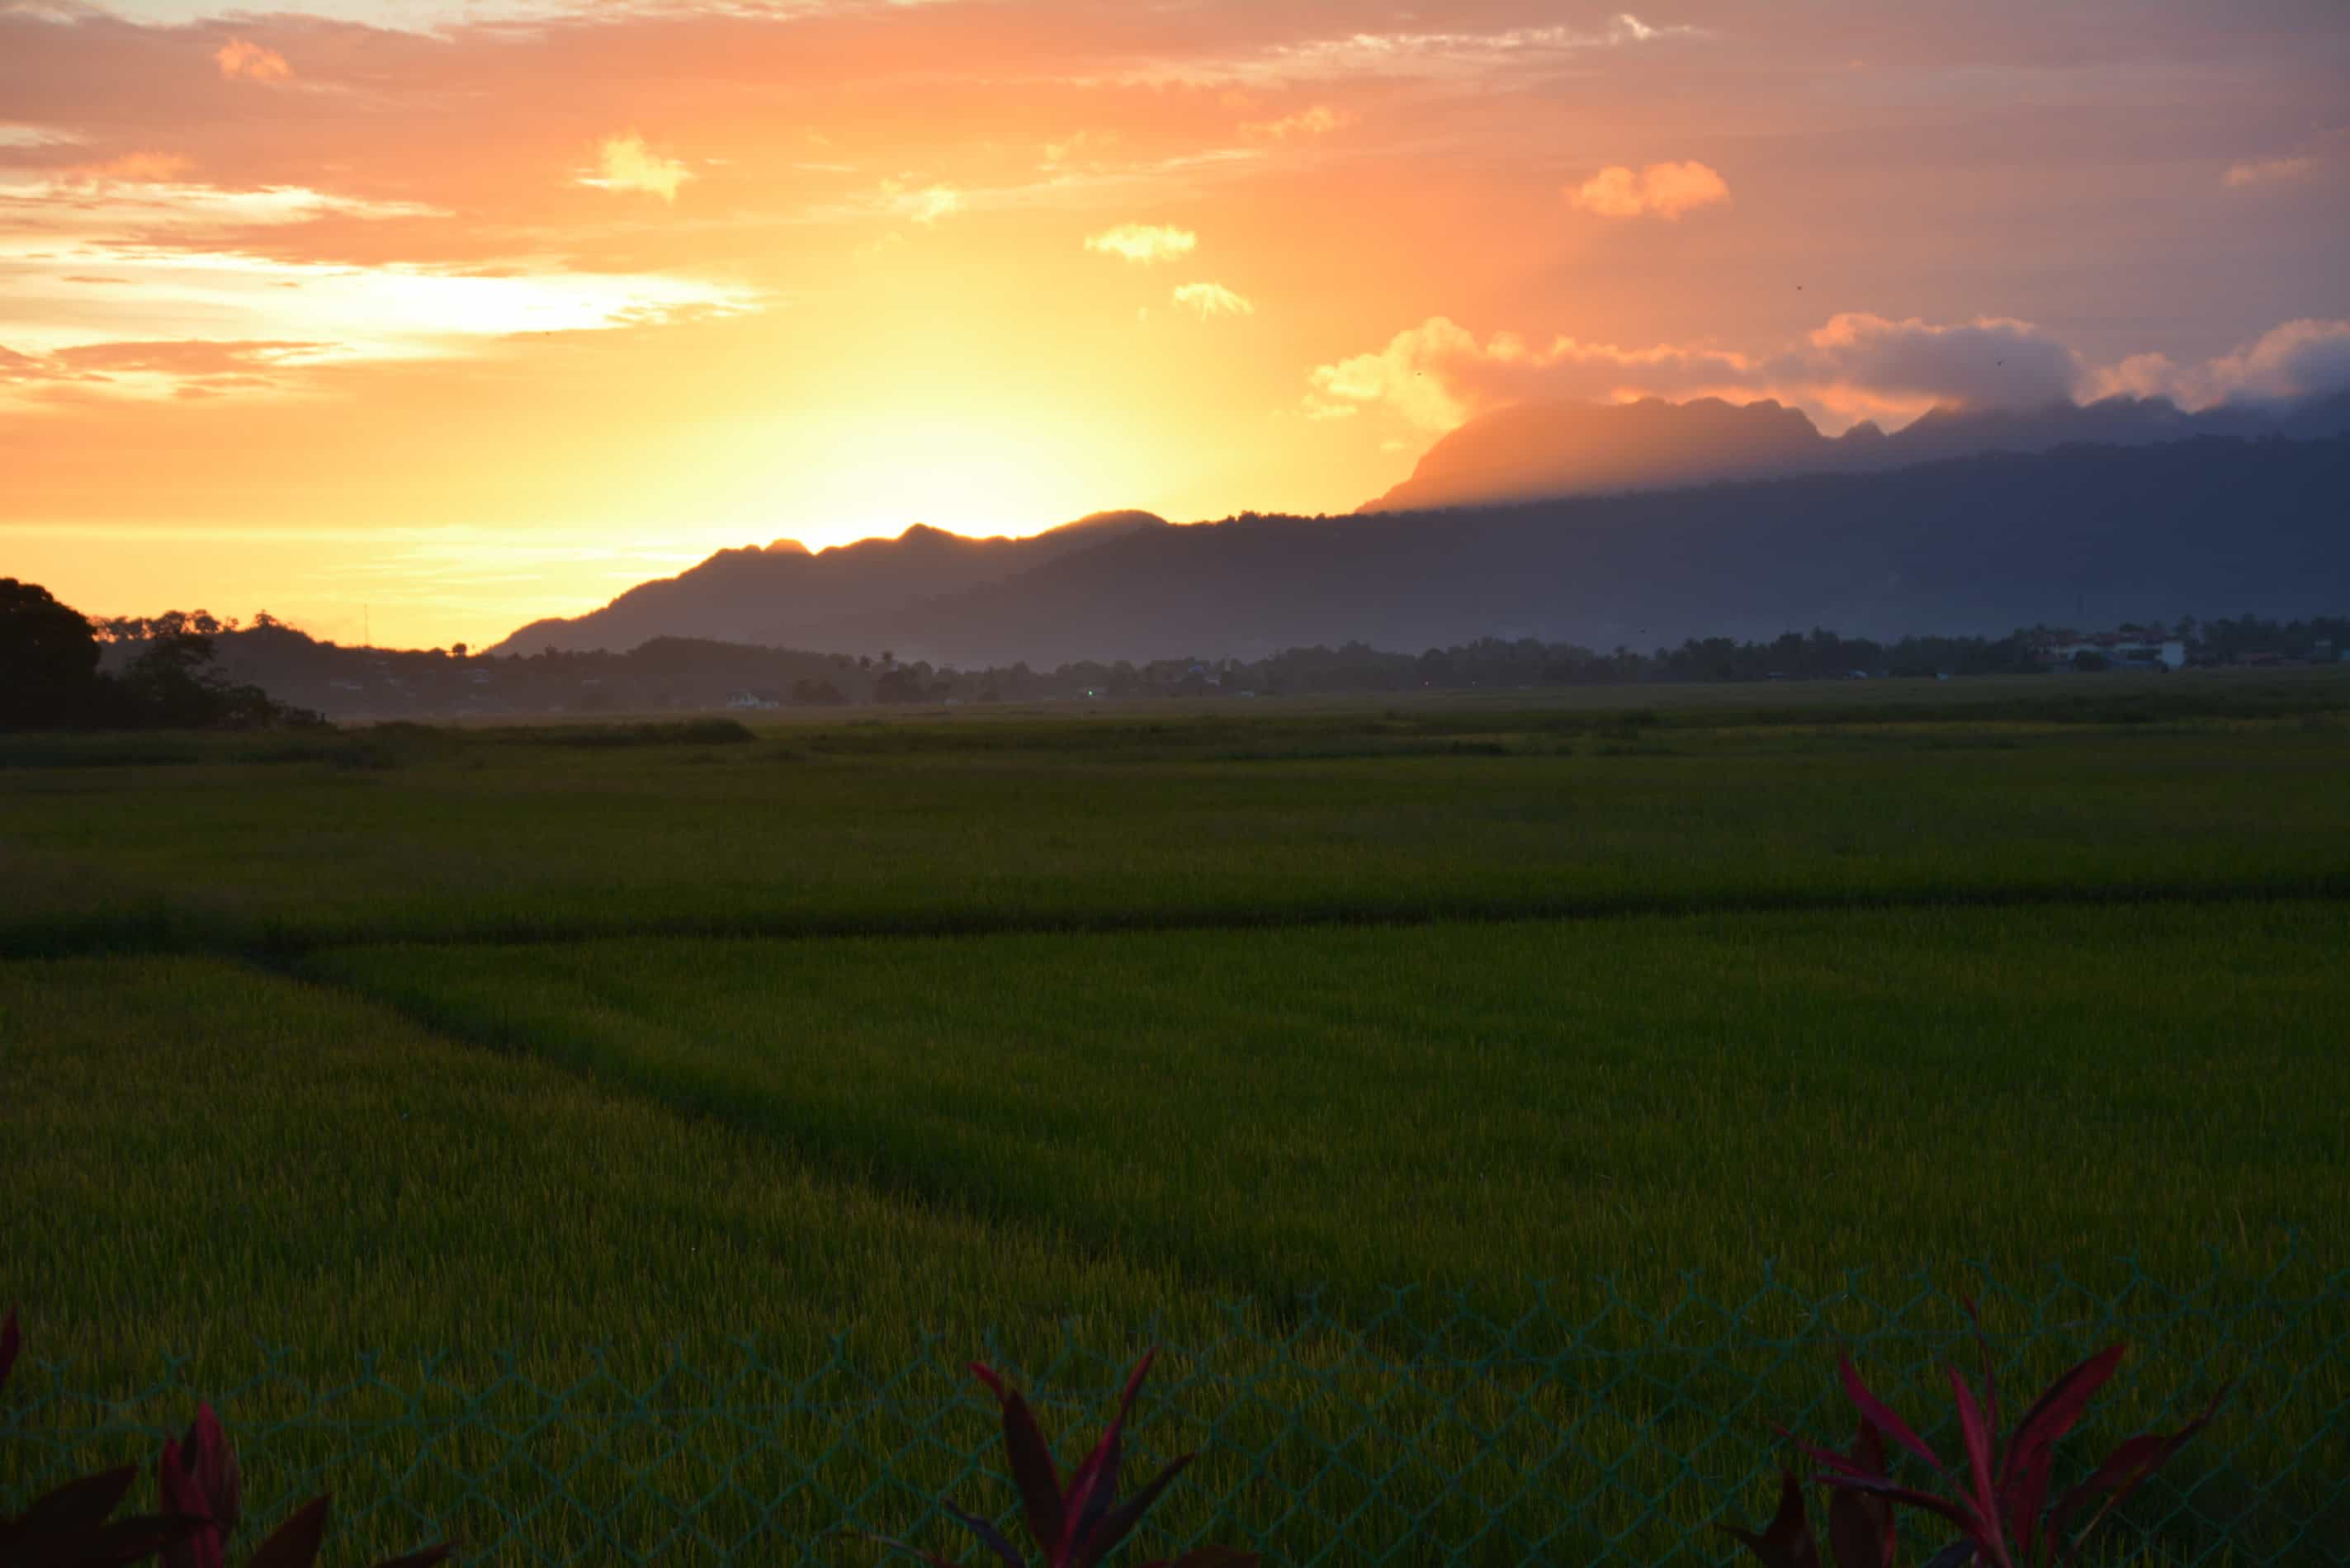 Sunset Valley Holiday Houses - rice paddy sunset